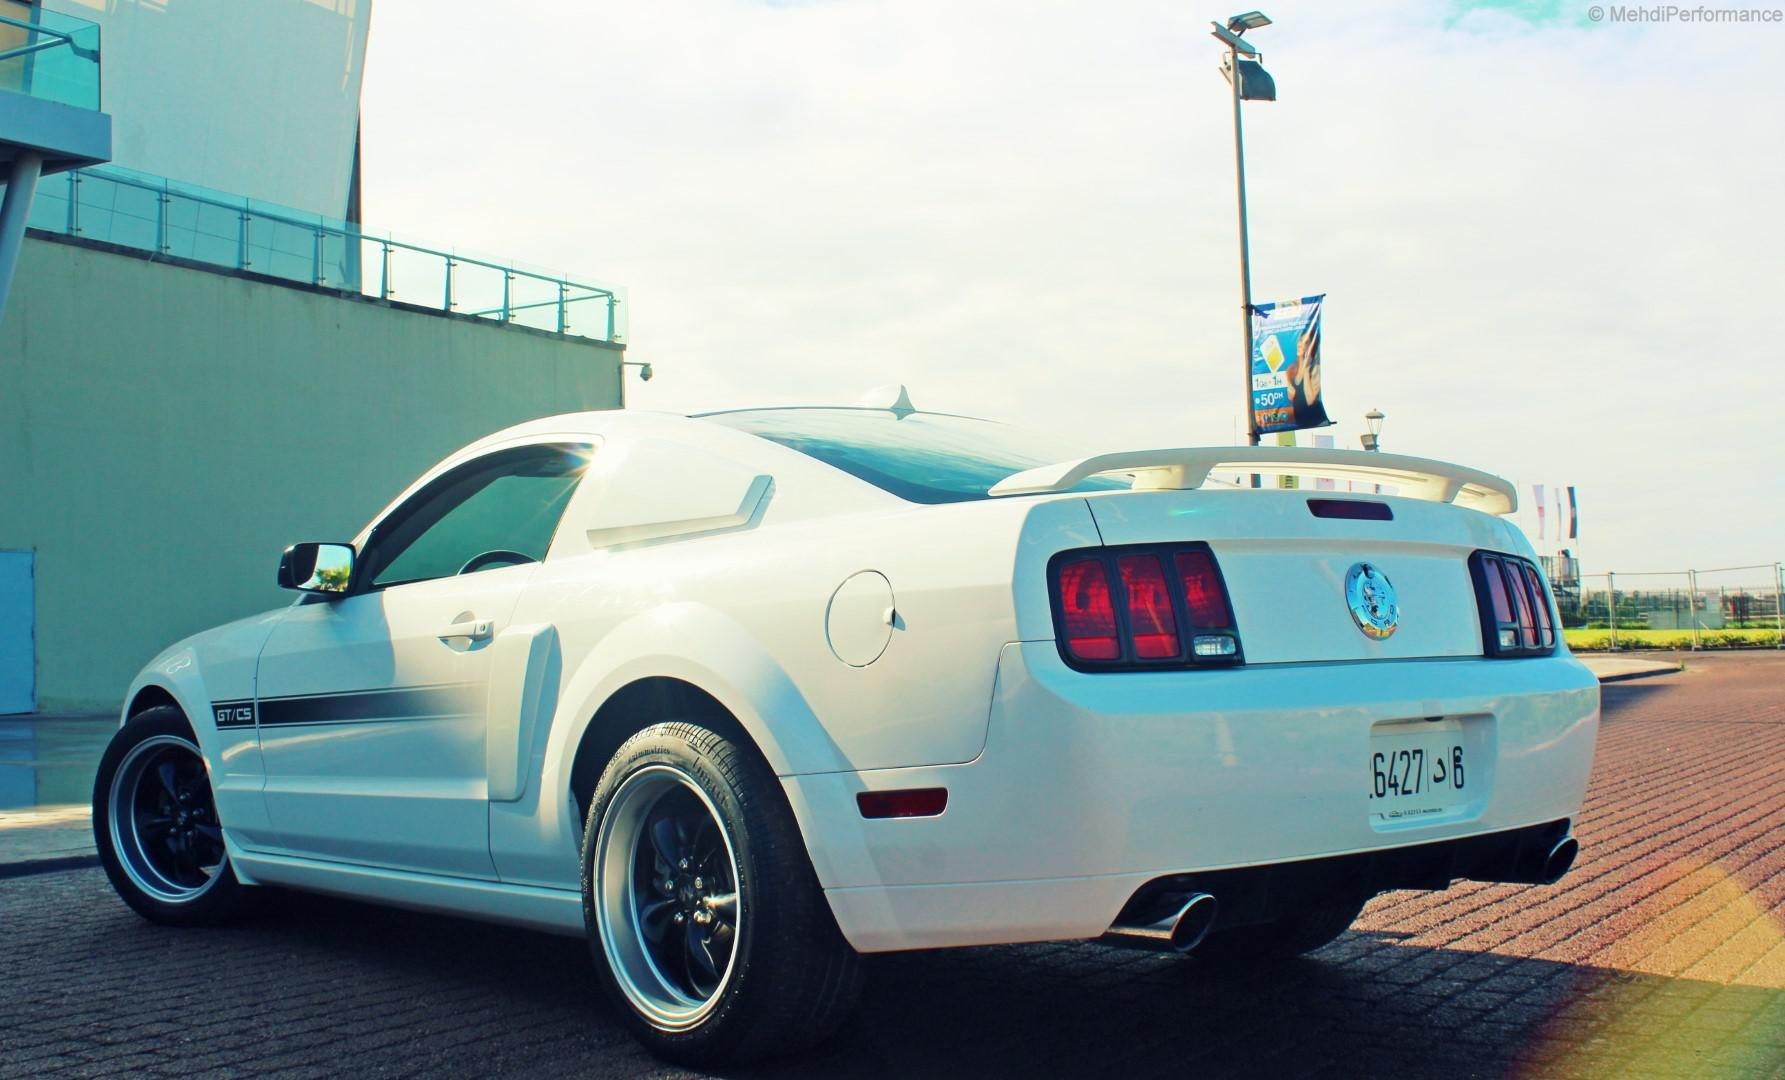 serie-speciale-au-maroc-ford-mustang-gt-v8-4-6l-california-special-manuelle-458-5.jpg